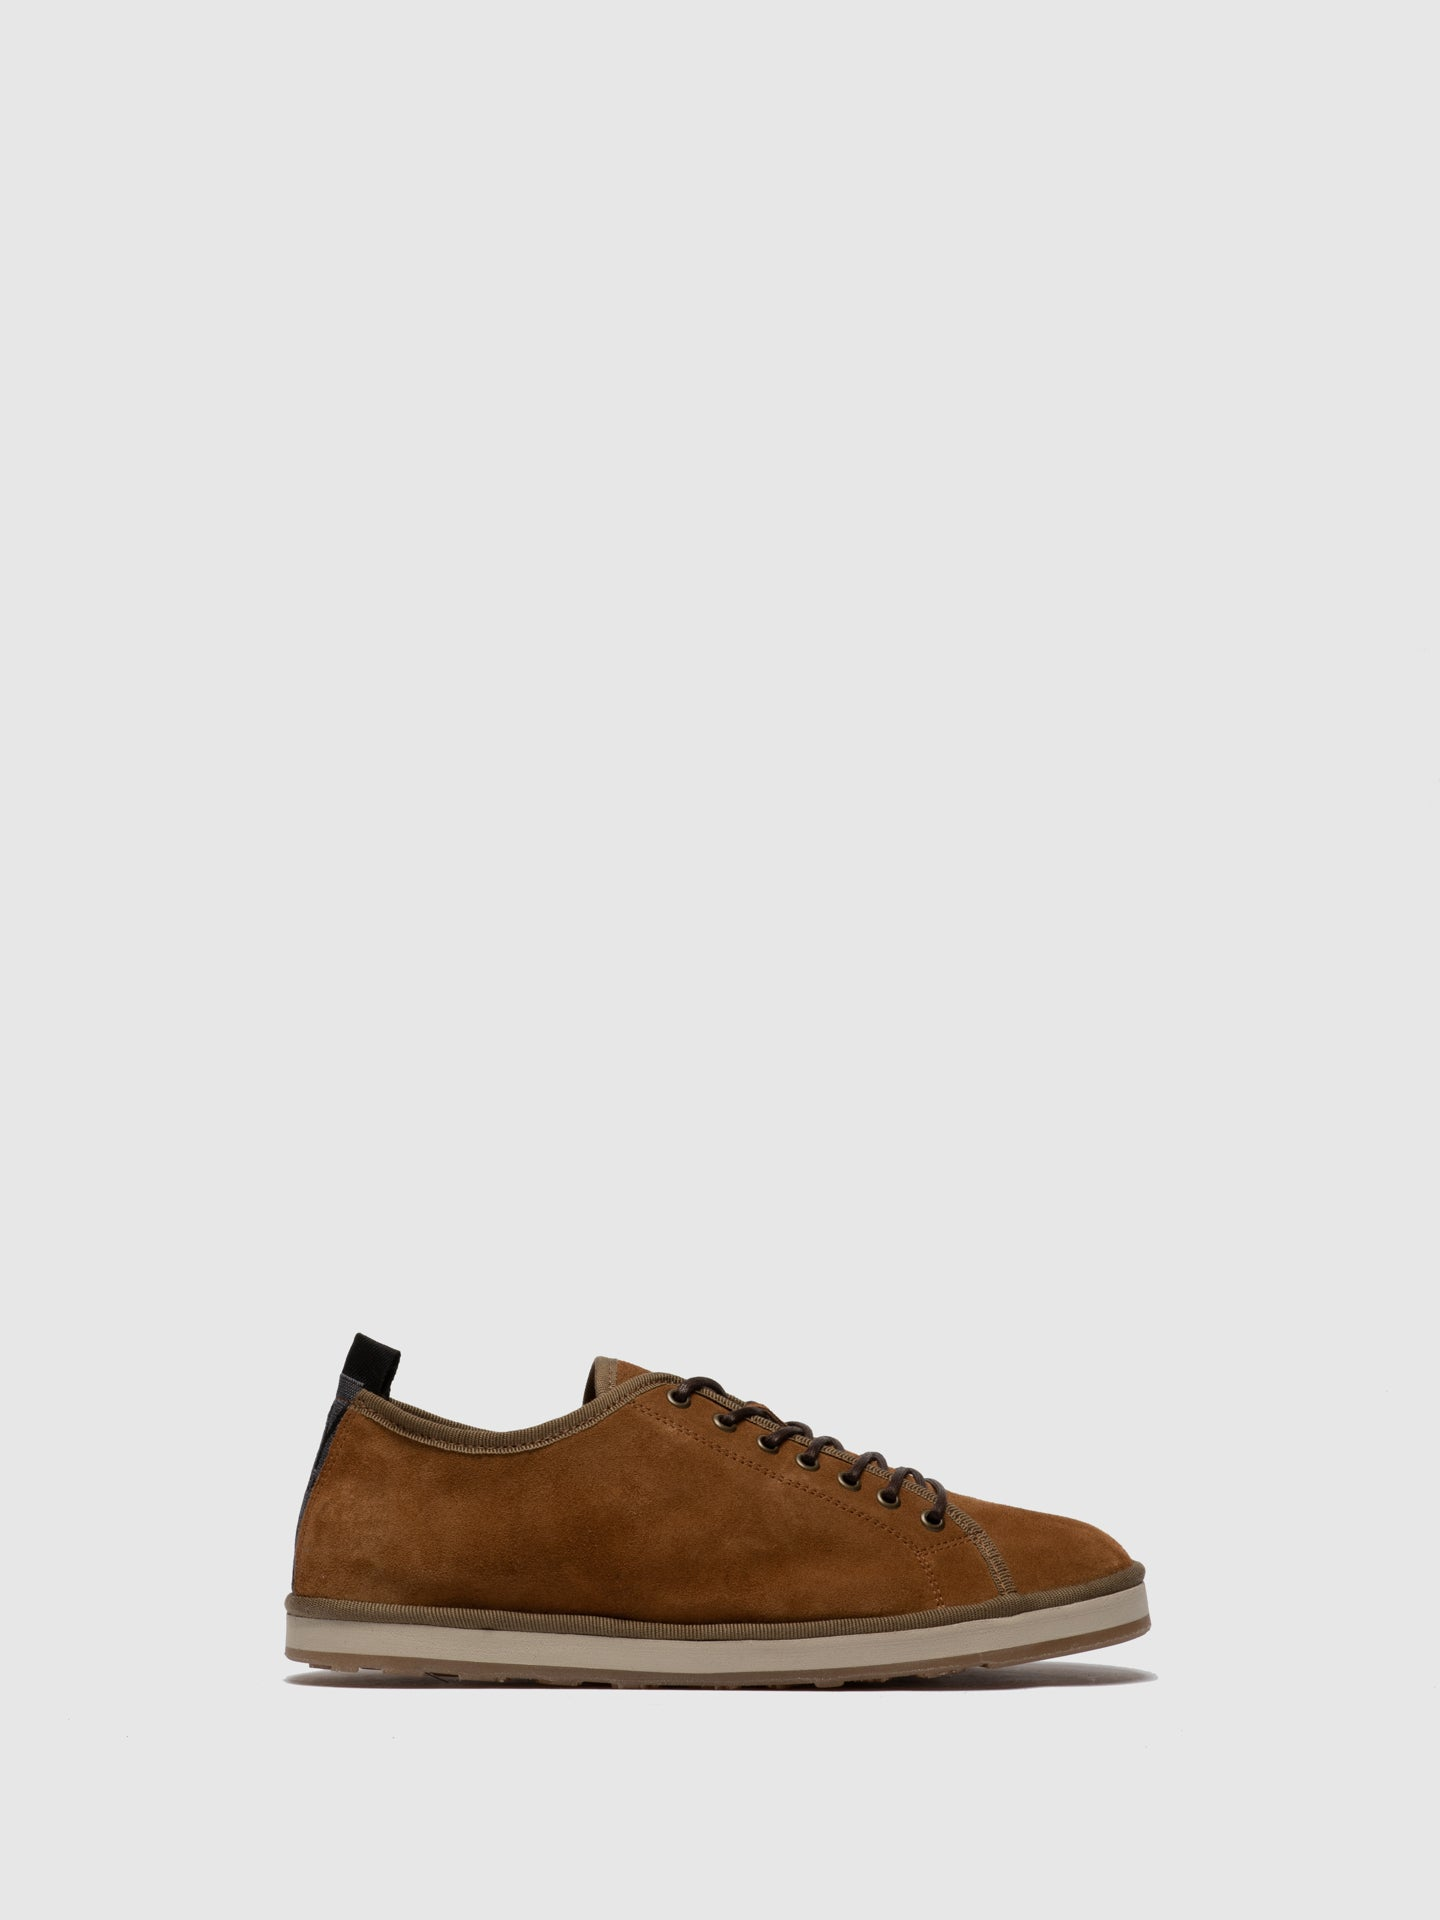 Fly London Tan Lace-up Shoes